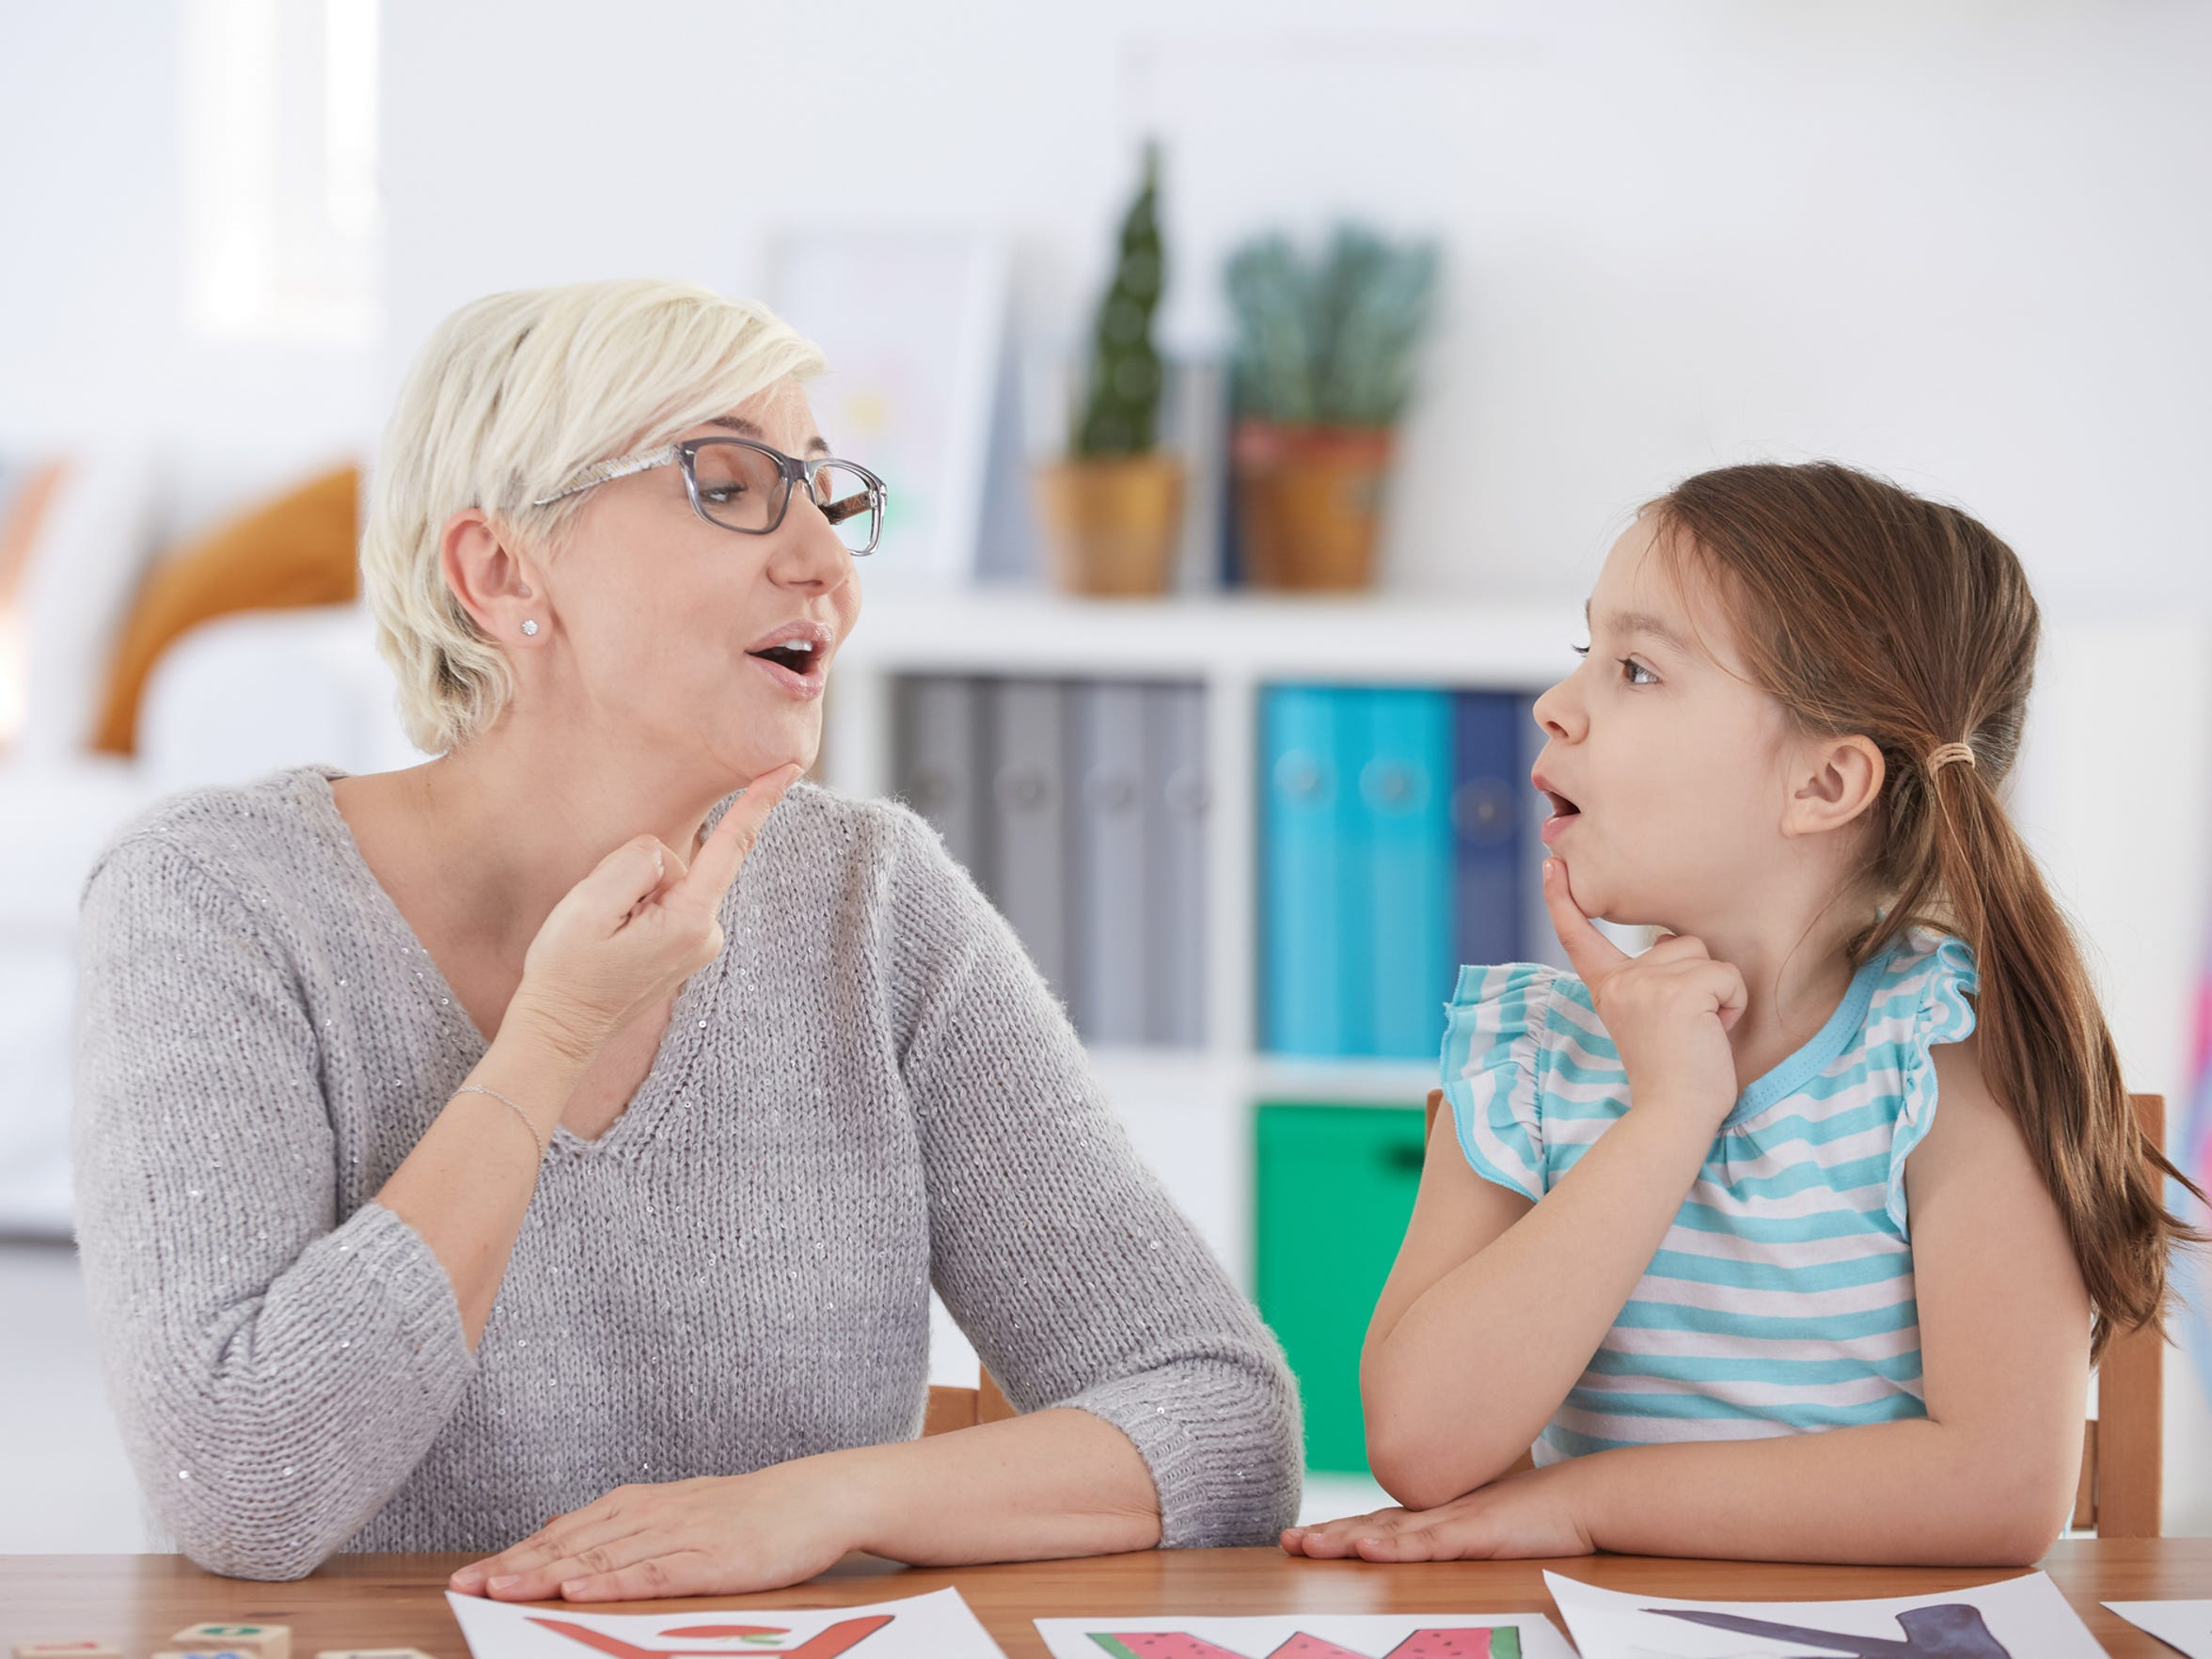 Early intervention therapies in the area are provided free of charge to children from birth to 3 years old. If the child requires services past the age of 3, they can qualify for free preschool therapy can continue services as they enter school, if needed.